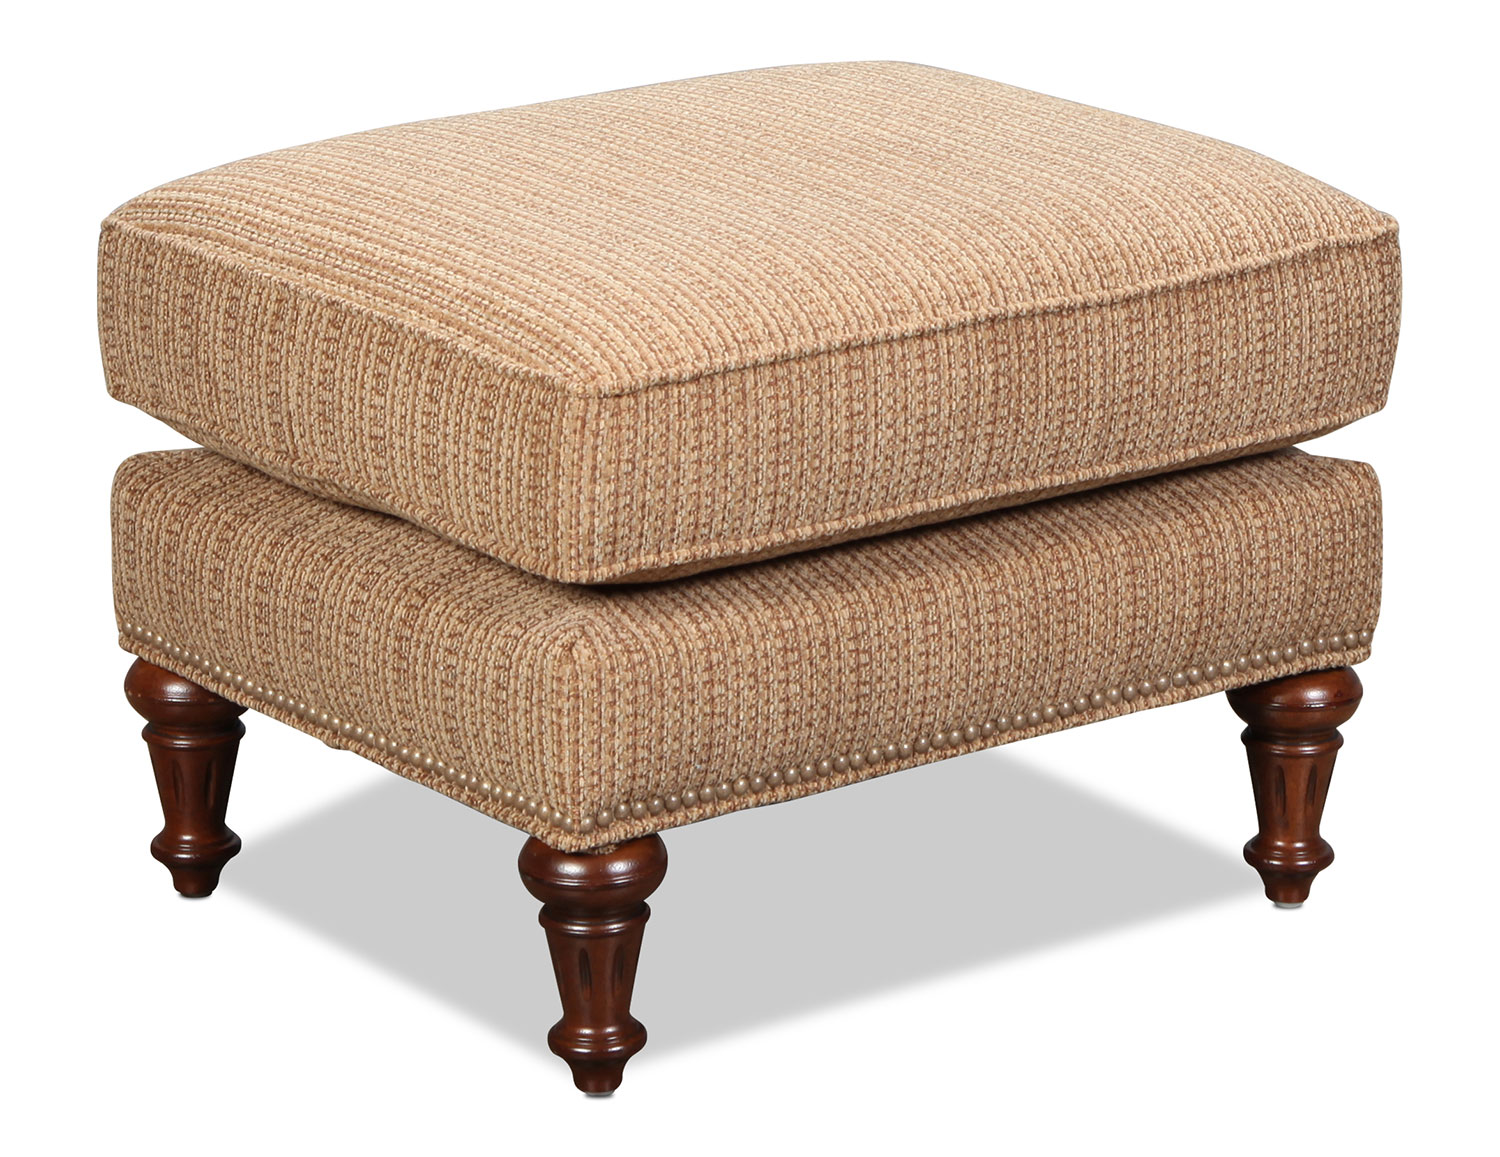 Living Room Furniture - Sloan Accent Ottoman - Russet